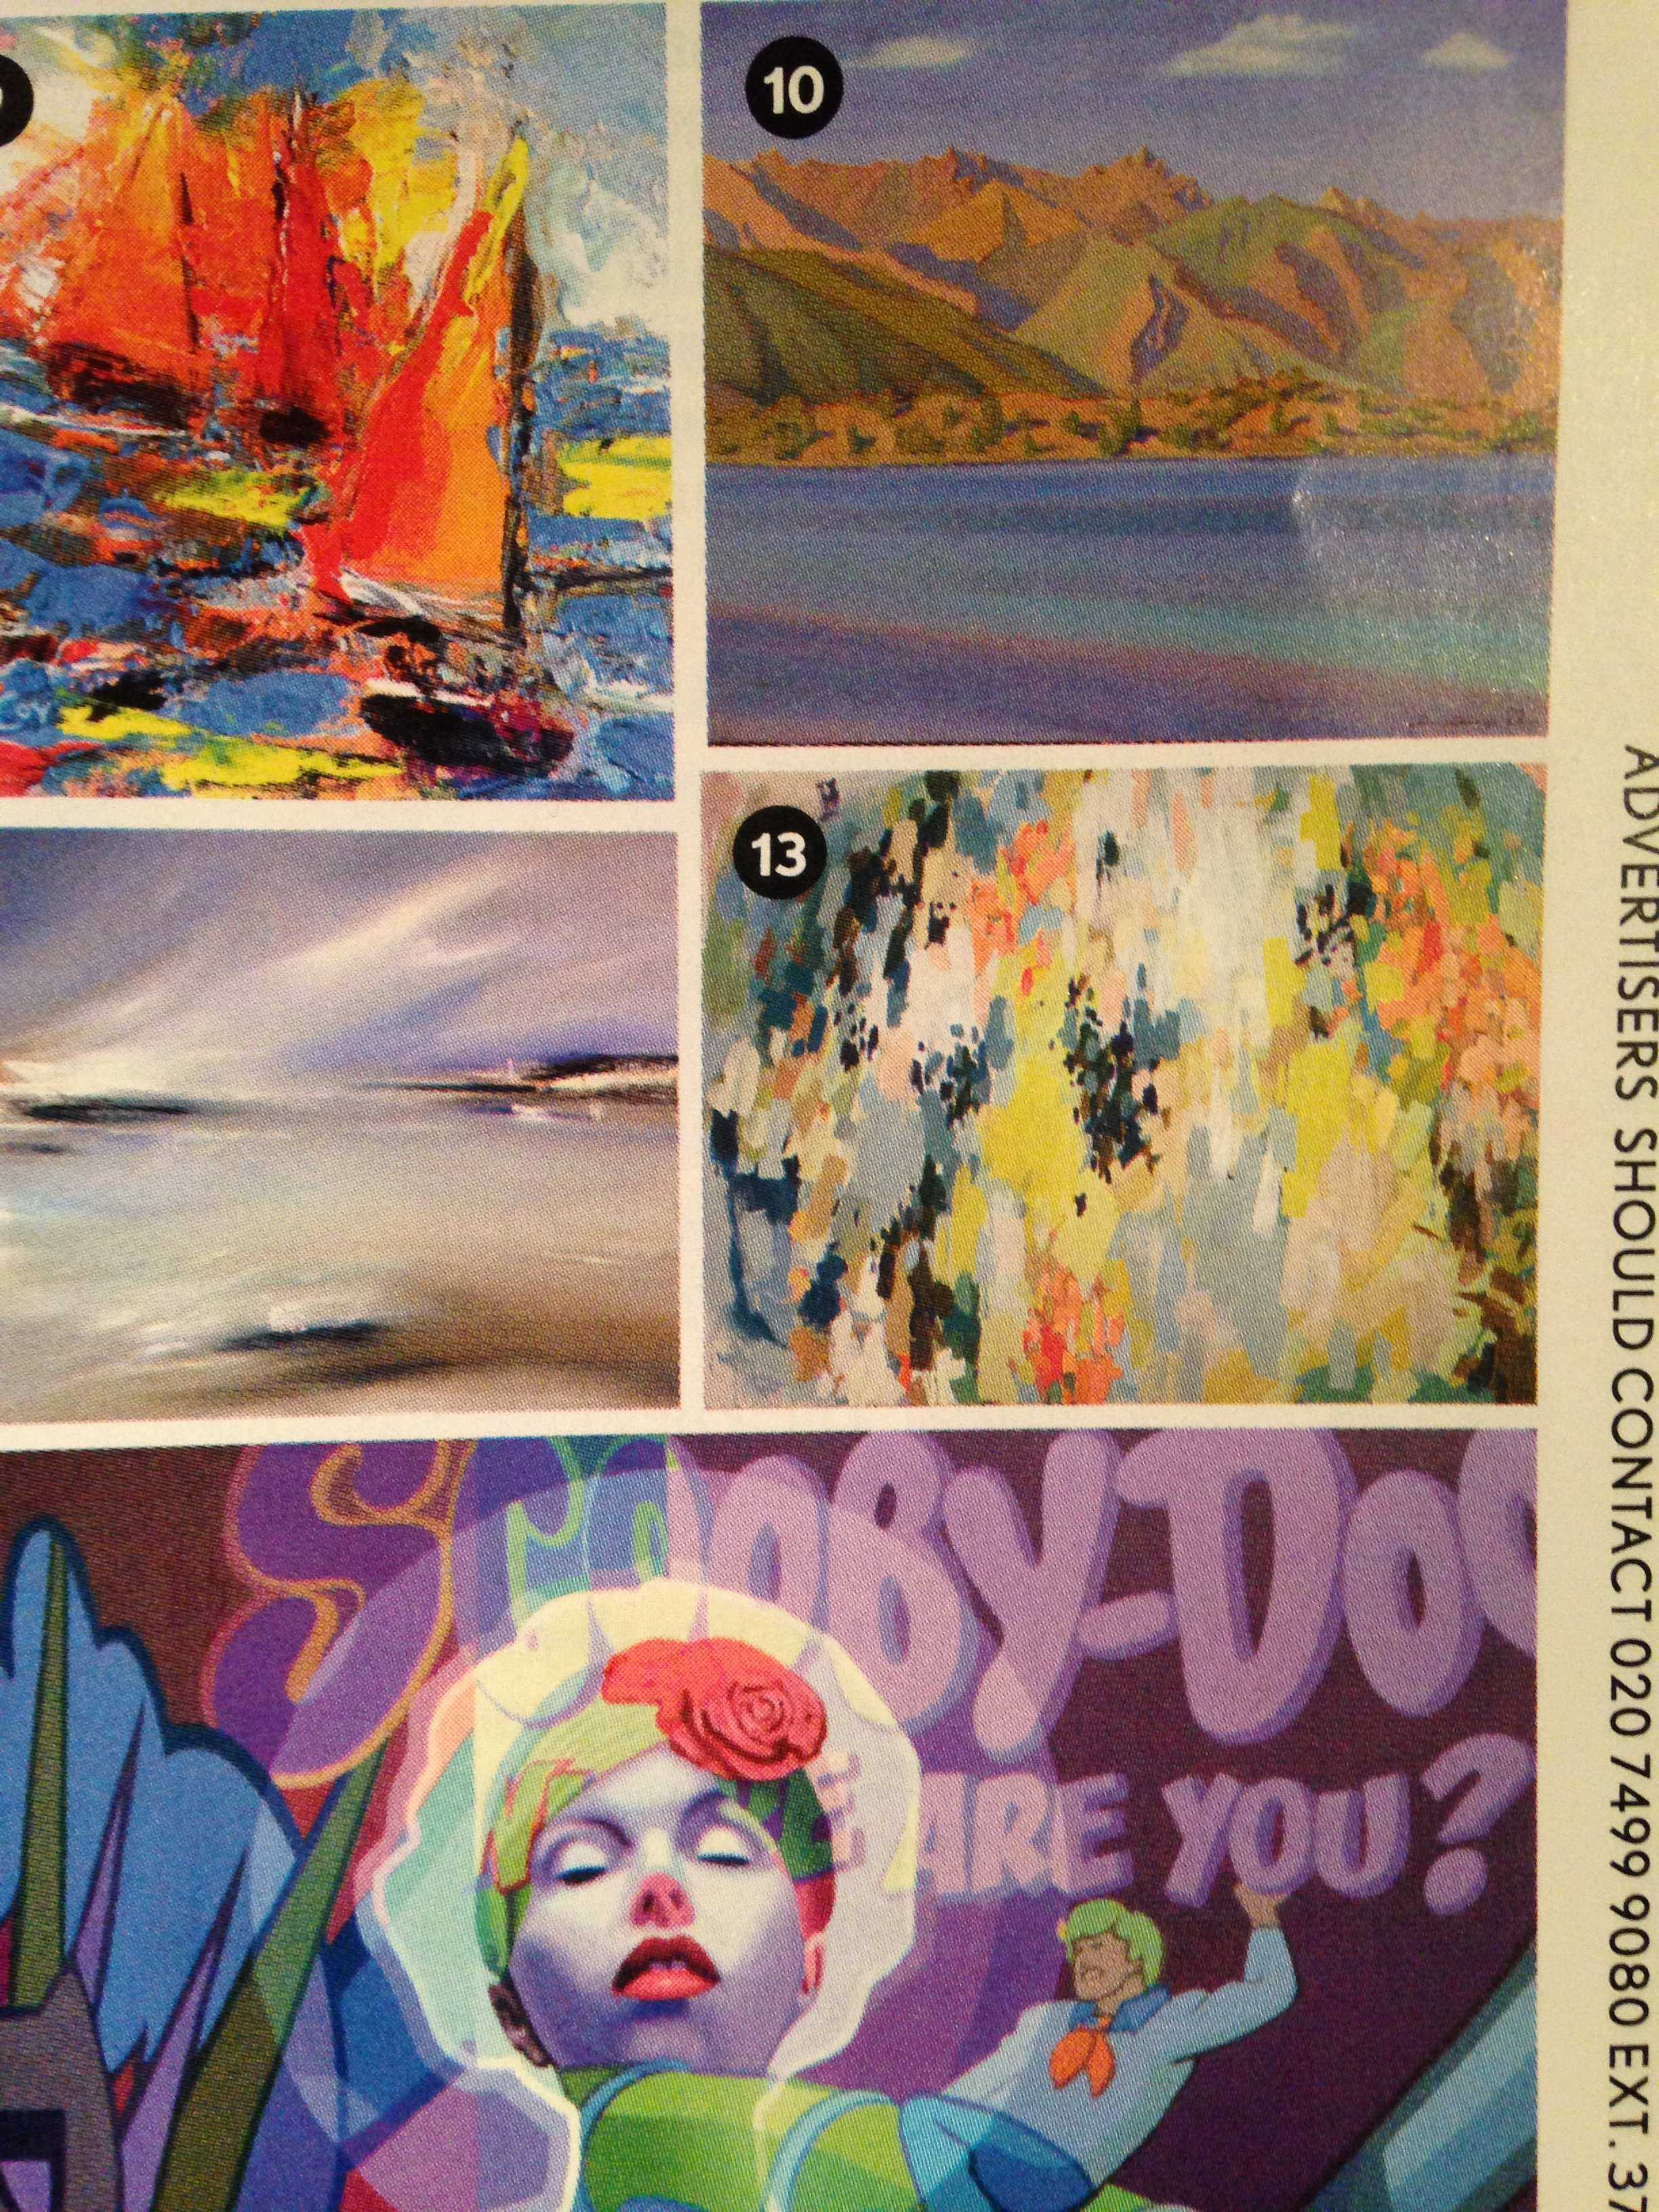 (center right) Visual senior Madison Bloch's artwork featured in the January issue of British Vogue.